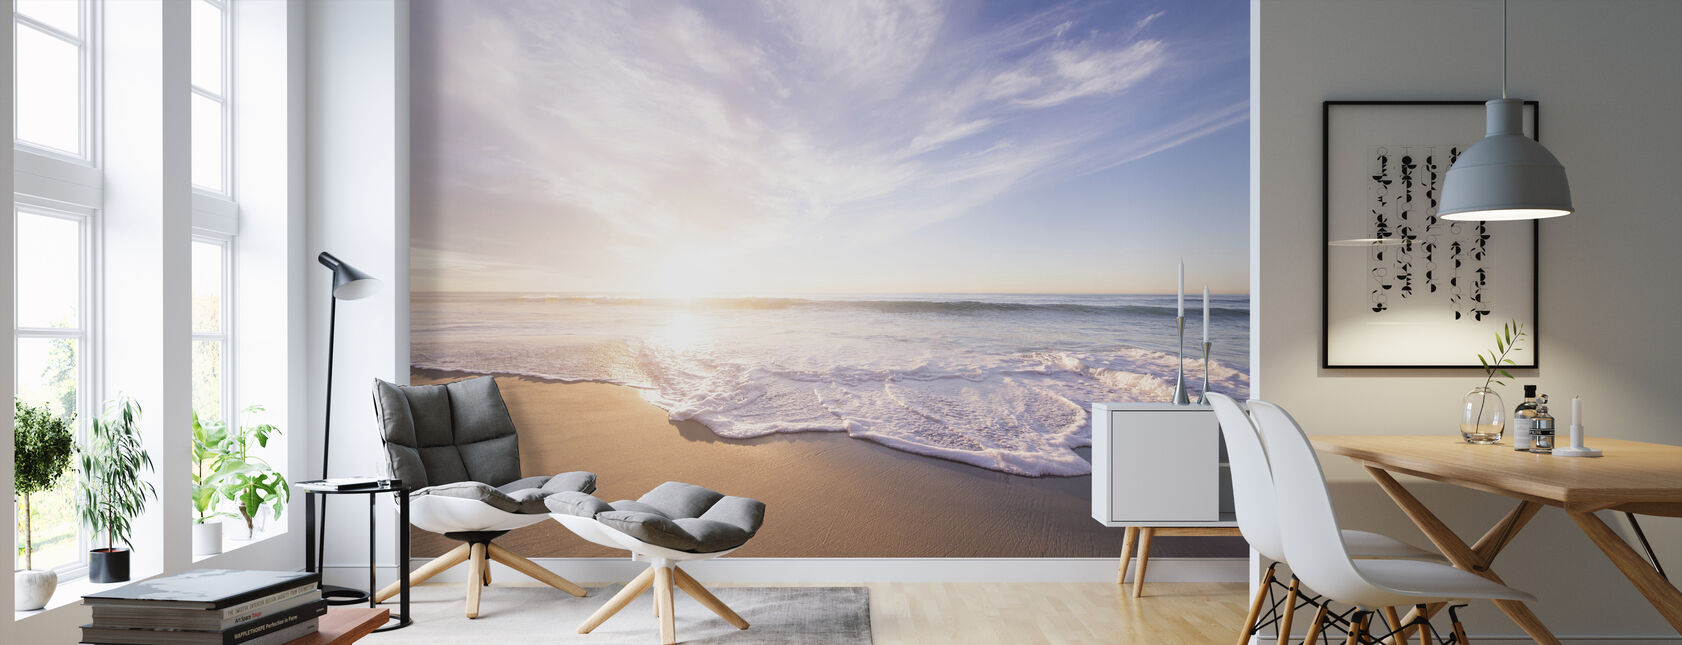 Sea Sand and Waves - Wallpaper - Living Room